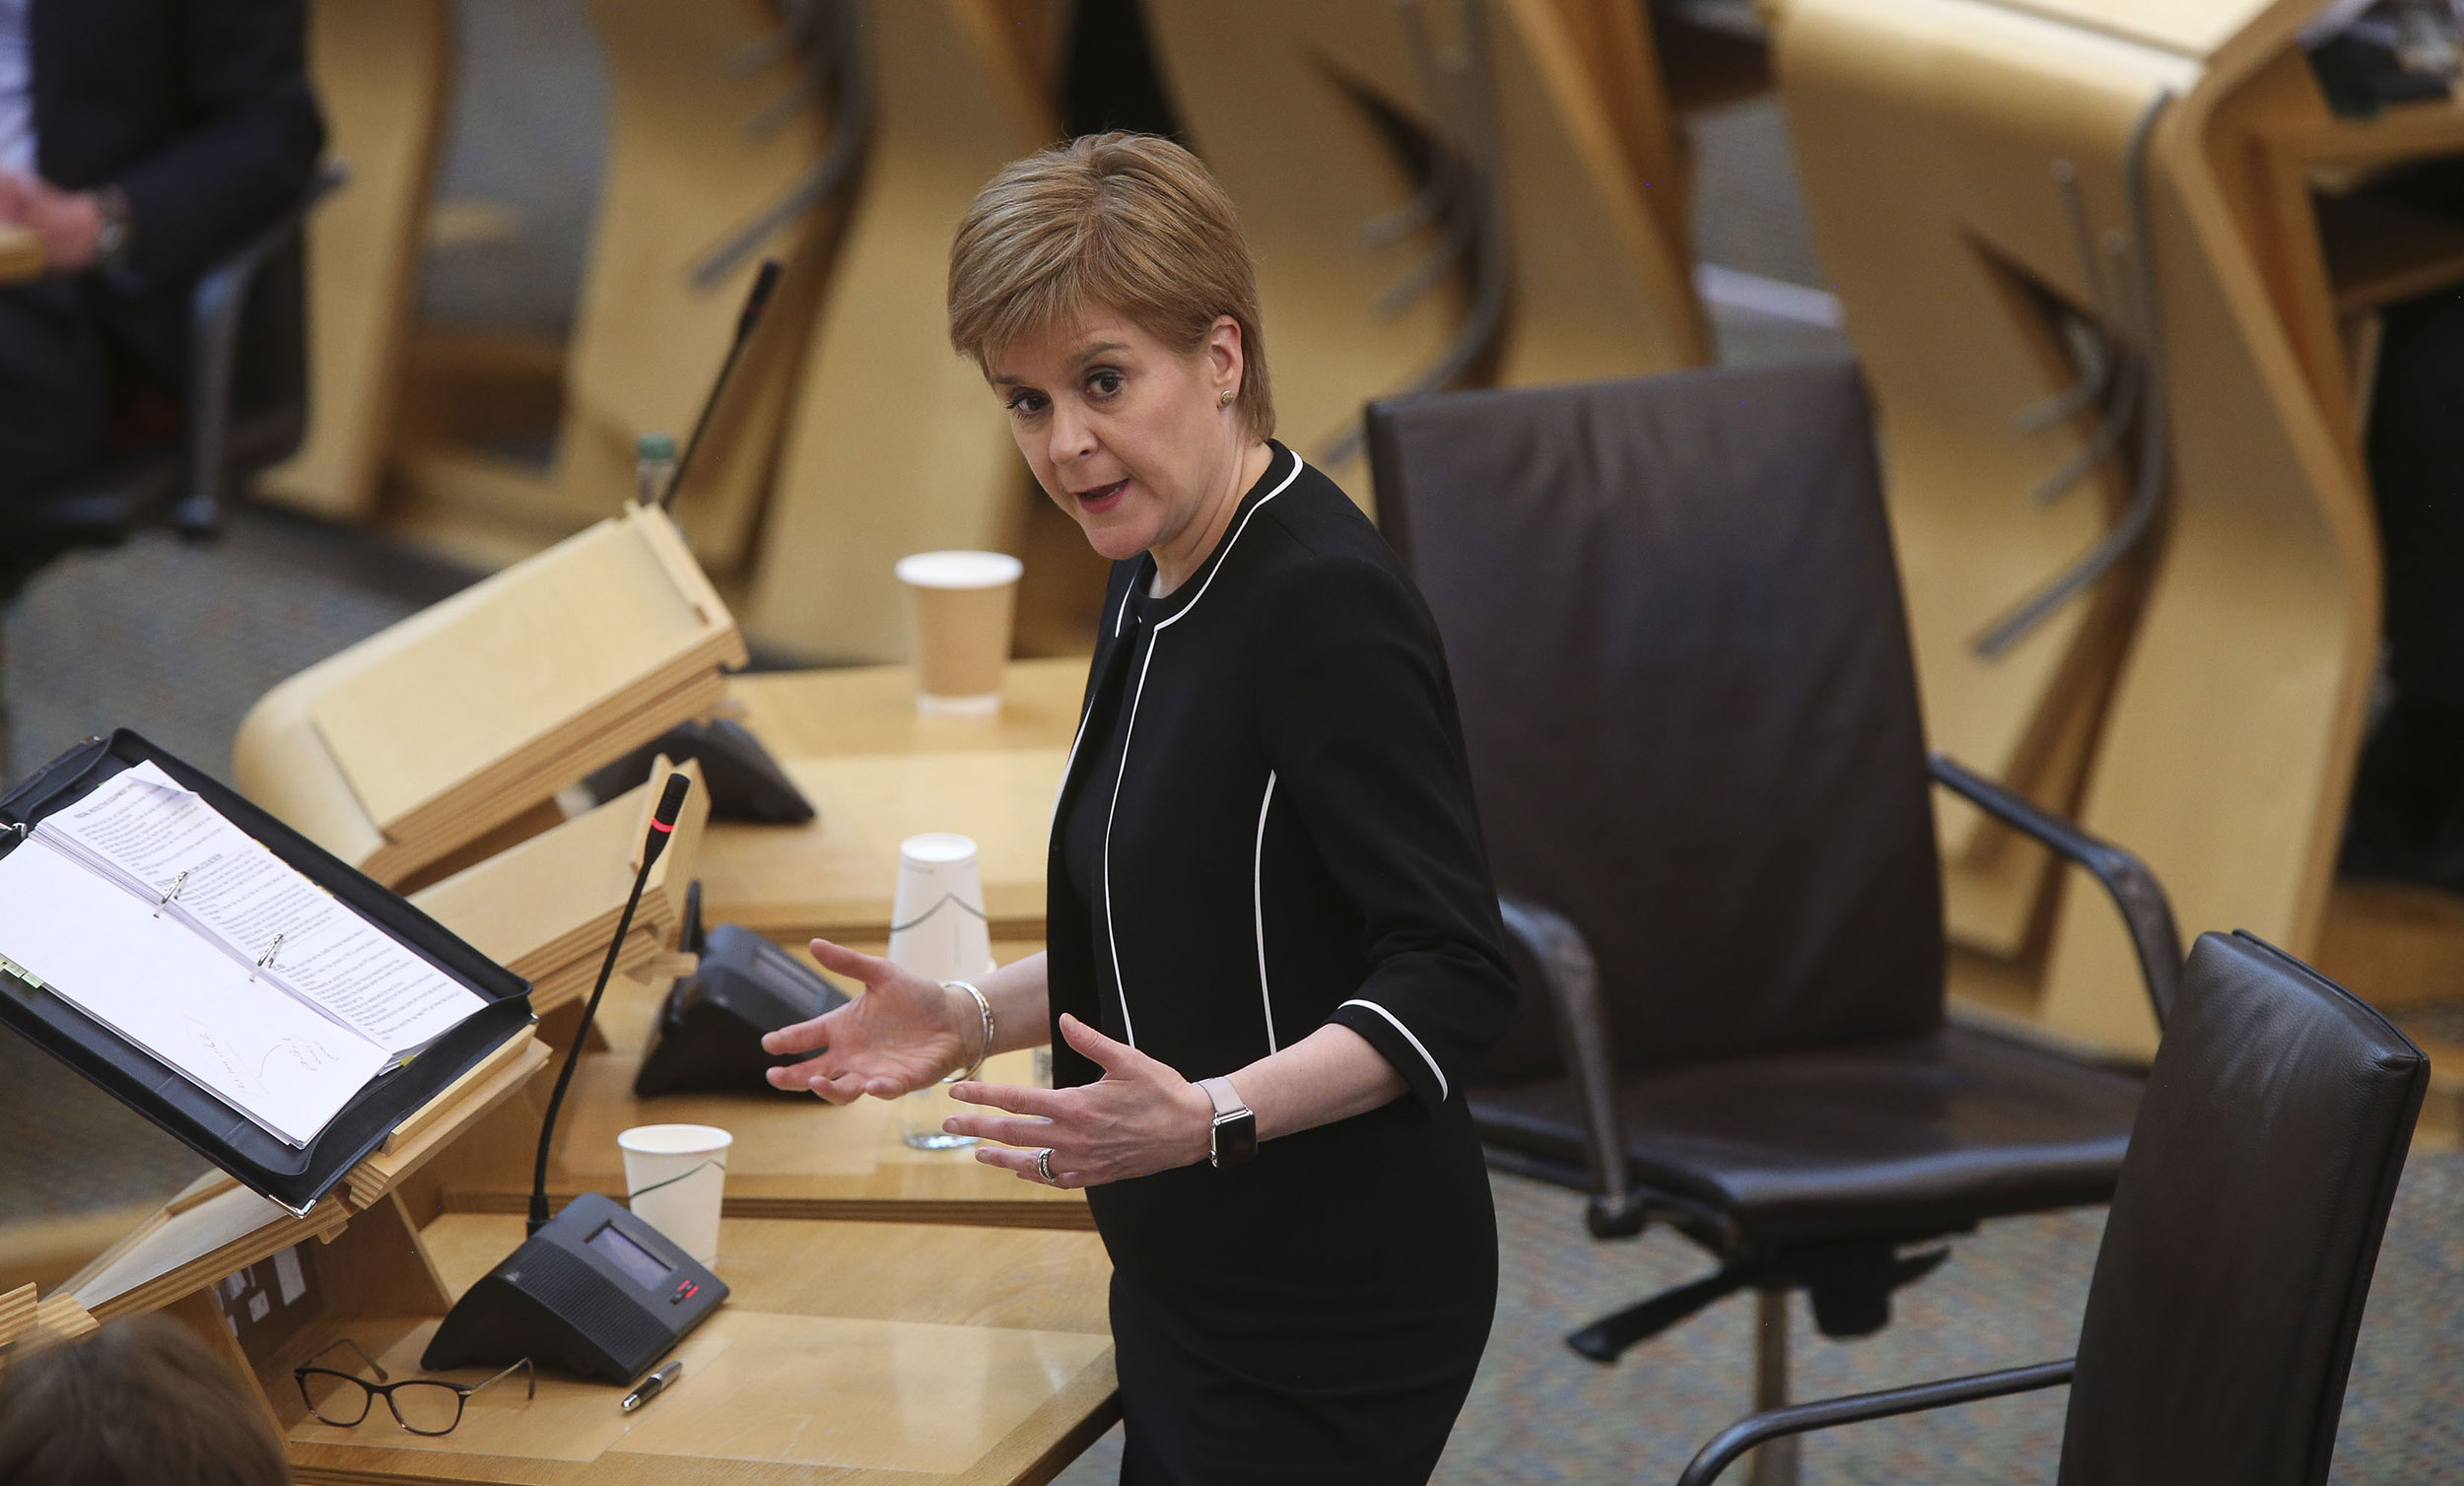 Scotland's First Minister Nicola Sturgeon speaks during First Minster's Questions (FMQ's) in the debating chamber of the Scottish Parliament in Edinburgh on April 28.